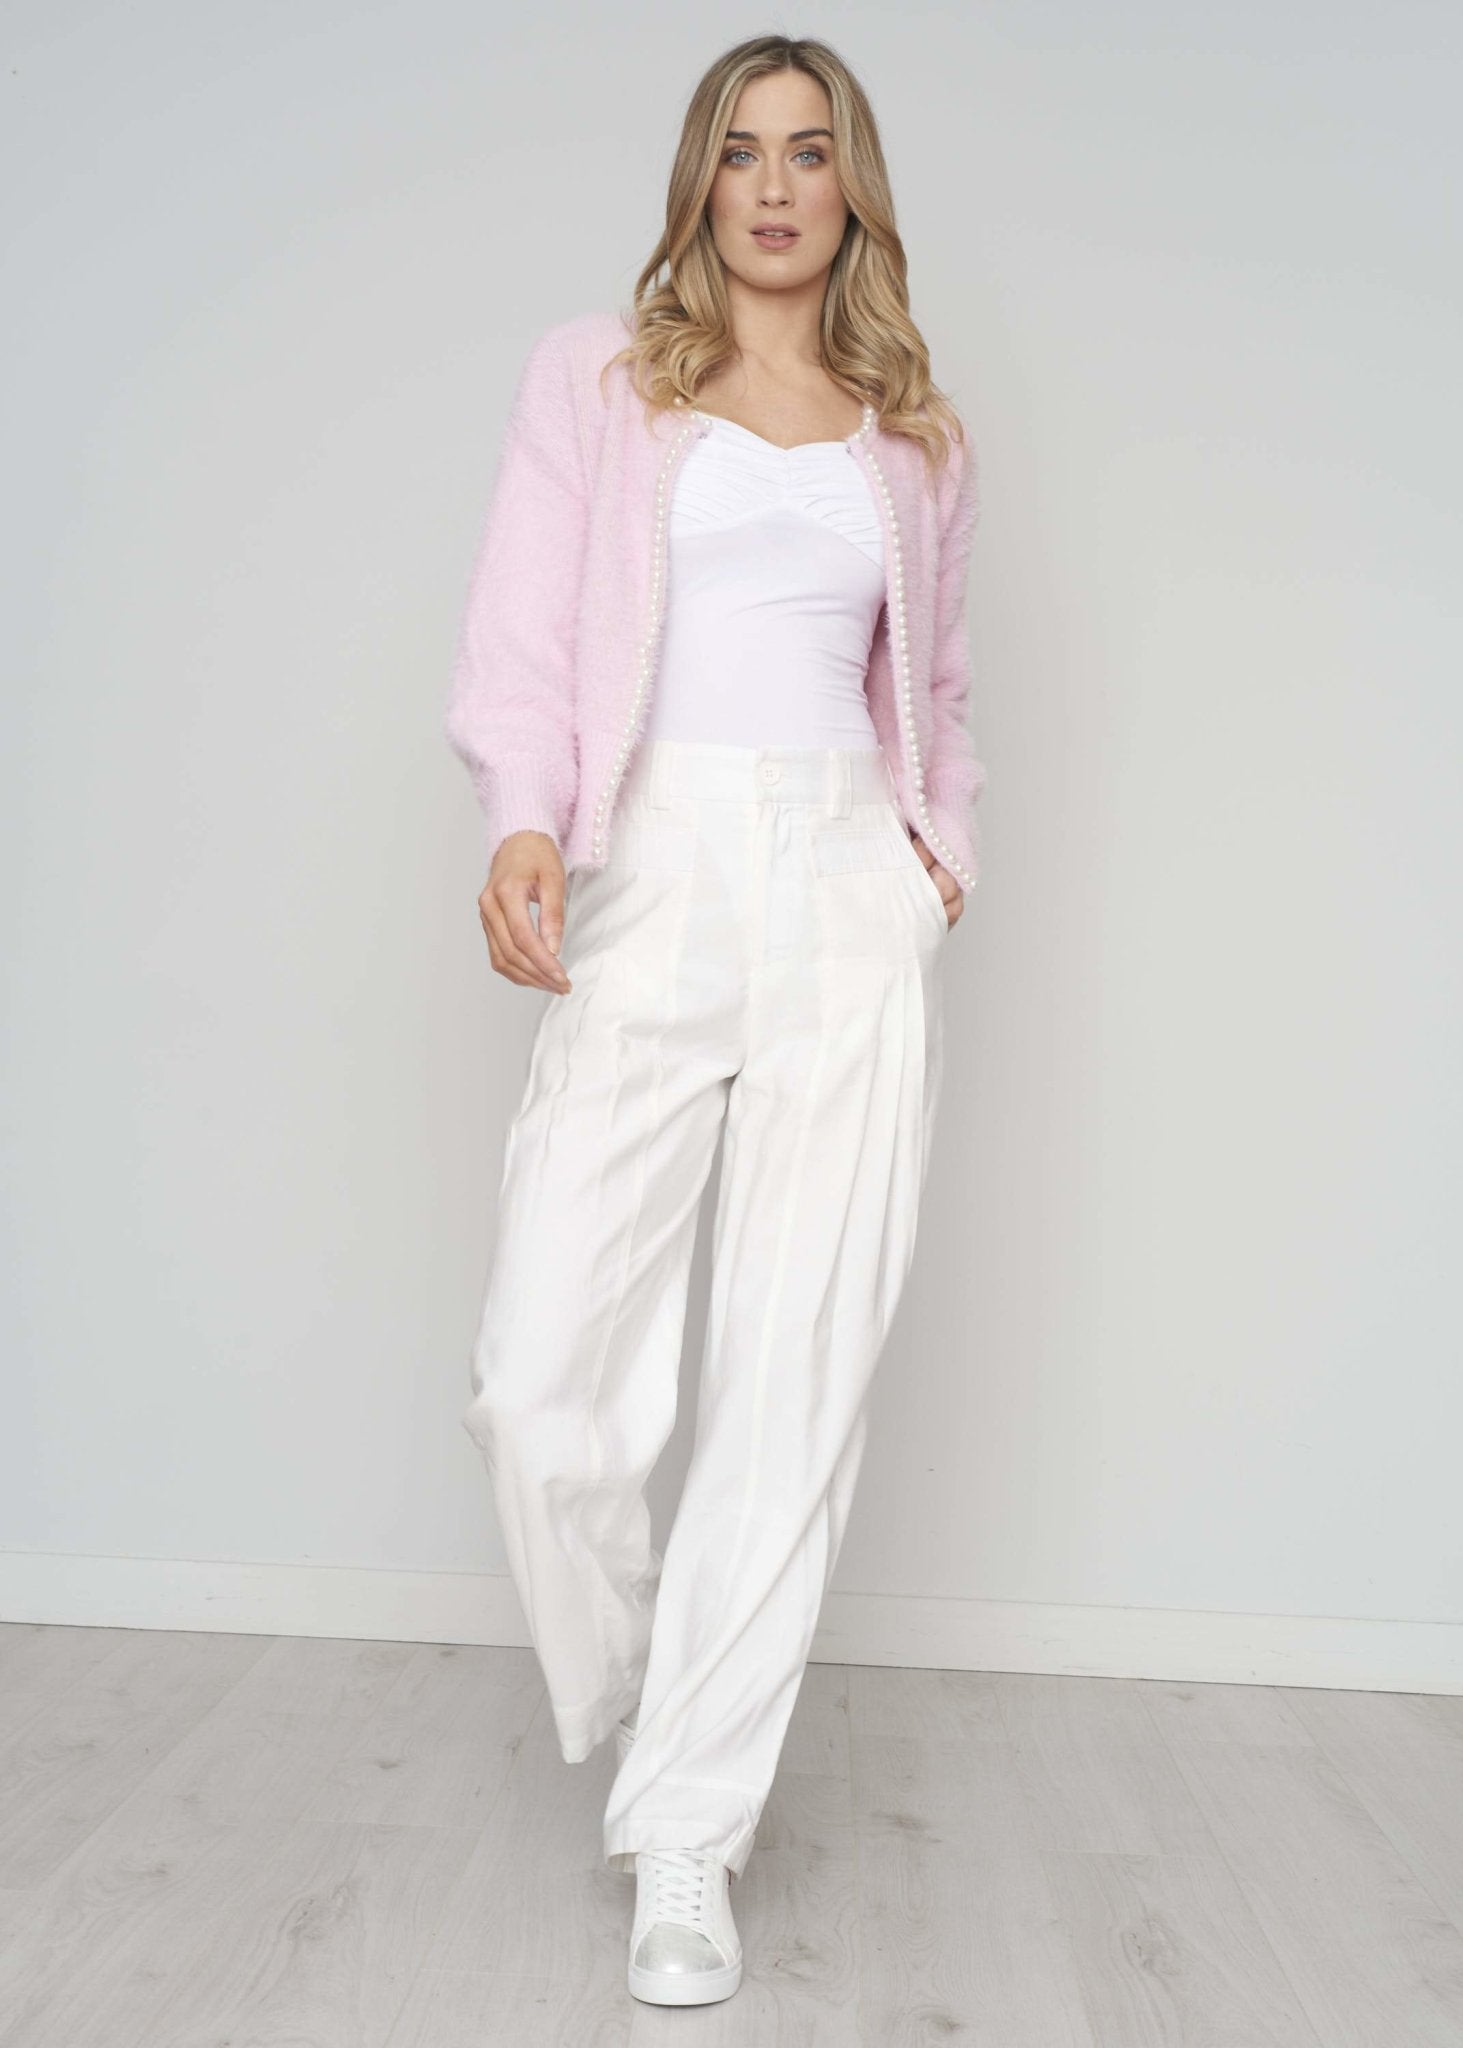 Blair Pearl Trim Cardigan In Pink - The Walk in Wardrobe